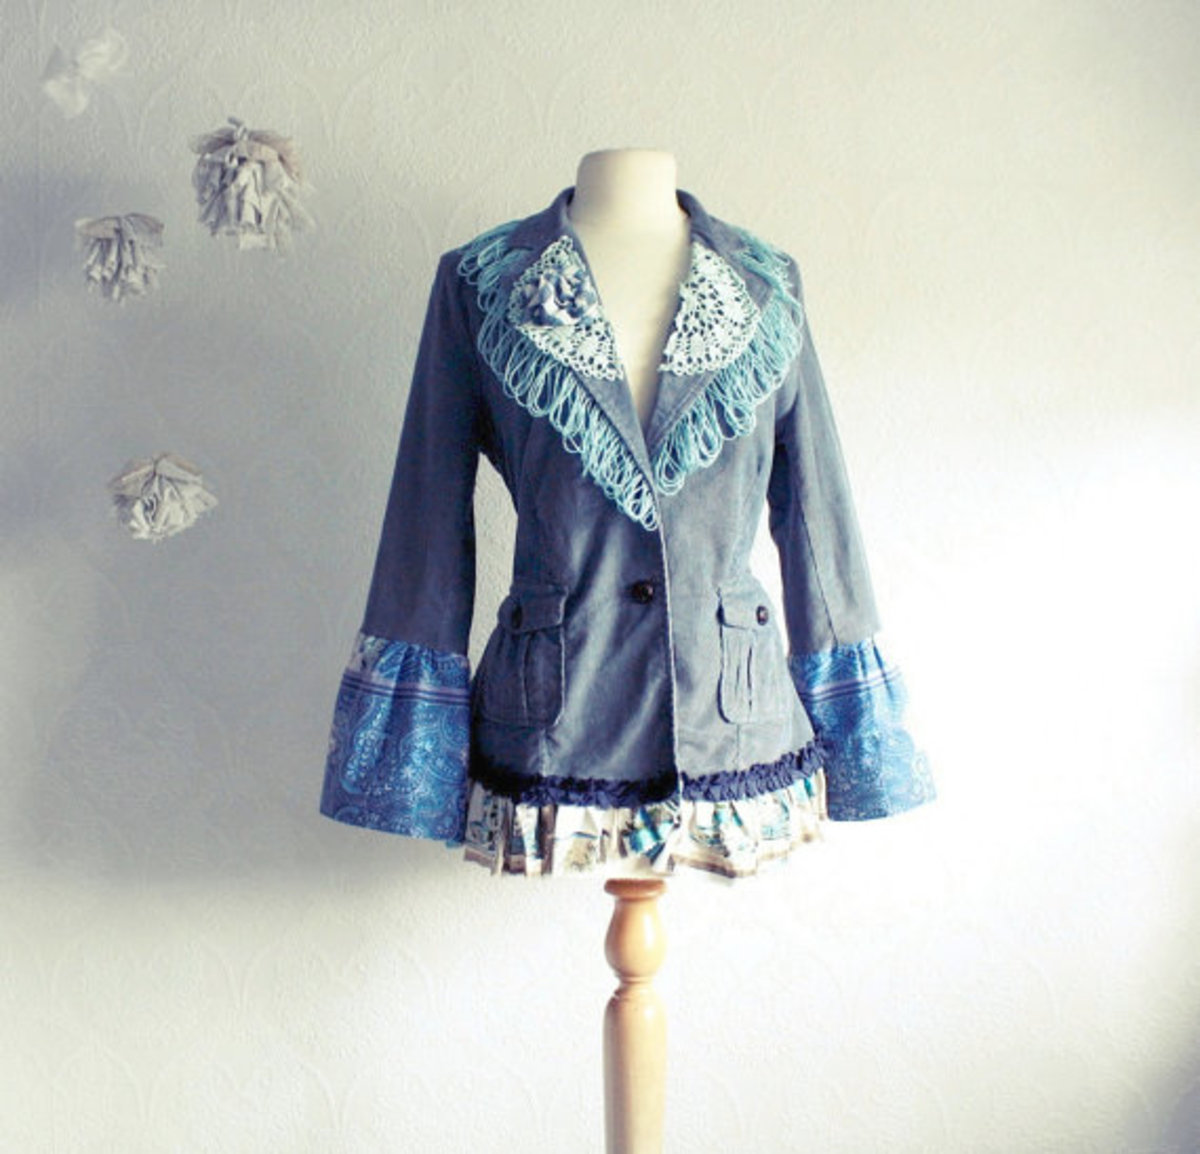 Bohemian Jacket Women's Upcycled Clothing Fringe Blazer Gray Blue Bell Sleeves Shabby Chic Eco Fashion Large 'MAISIE'